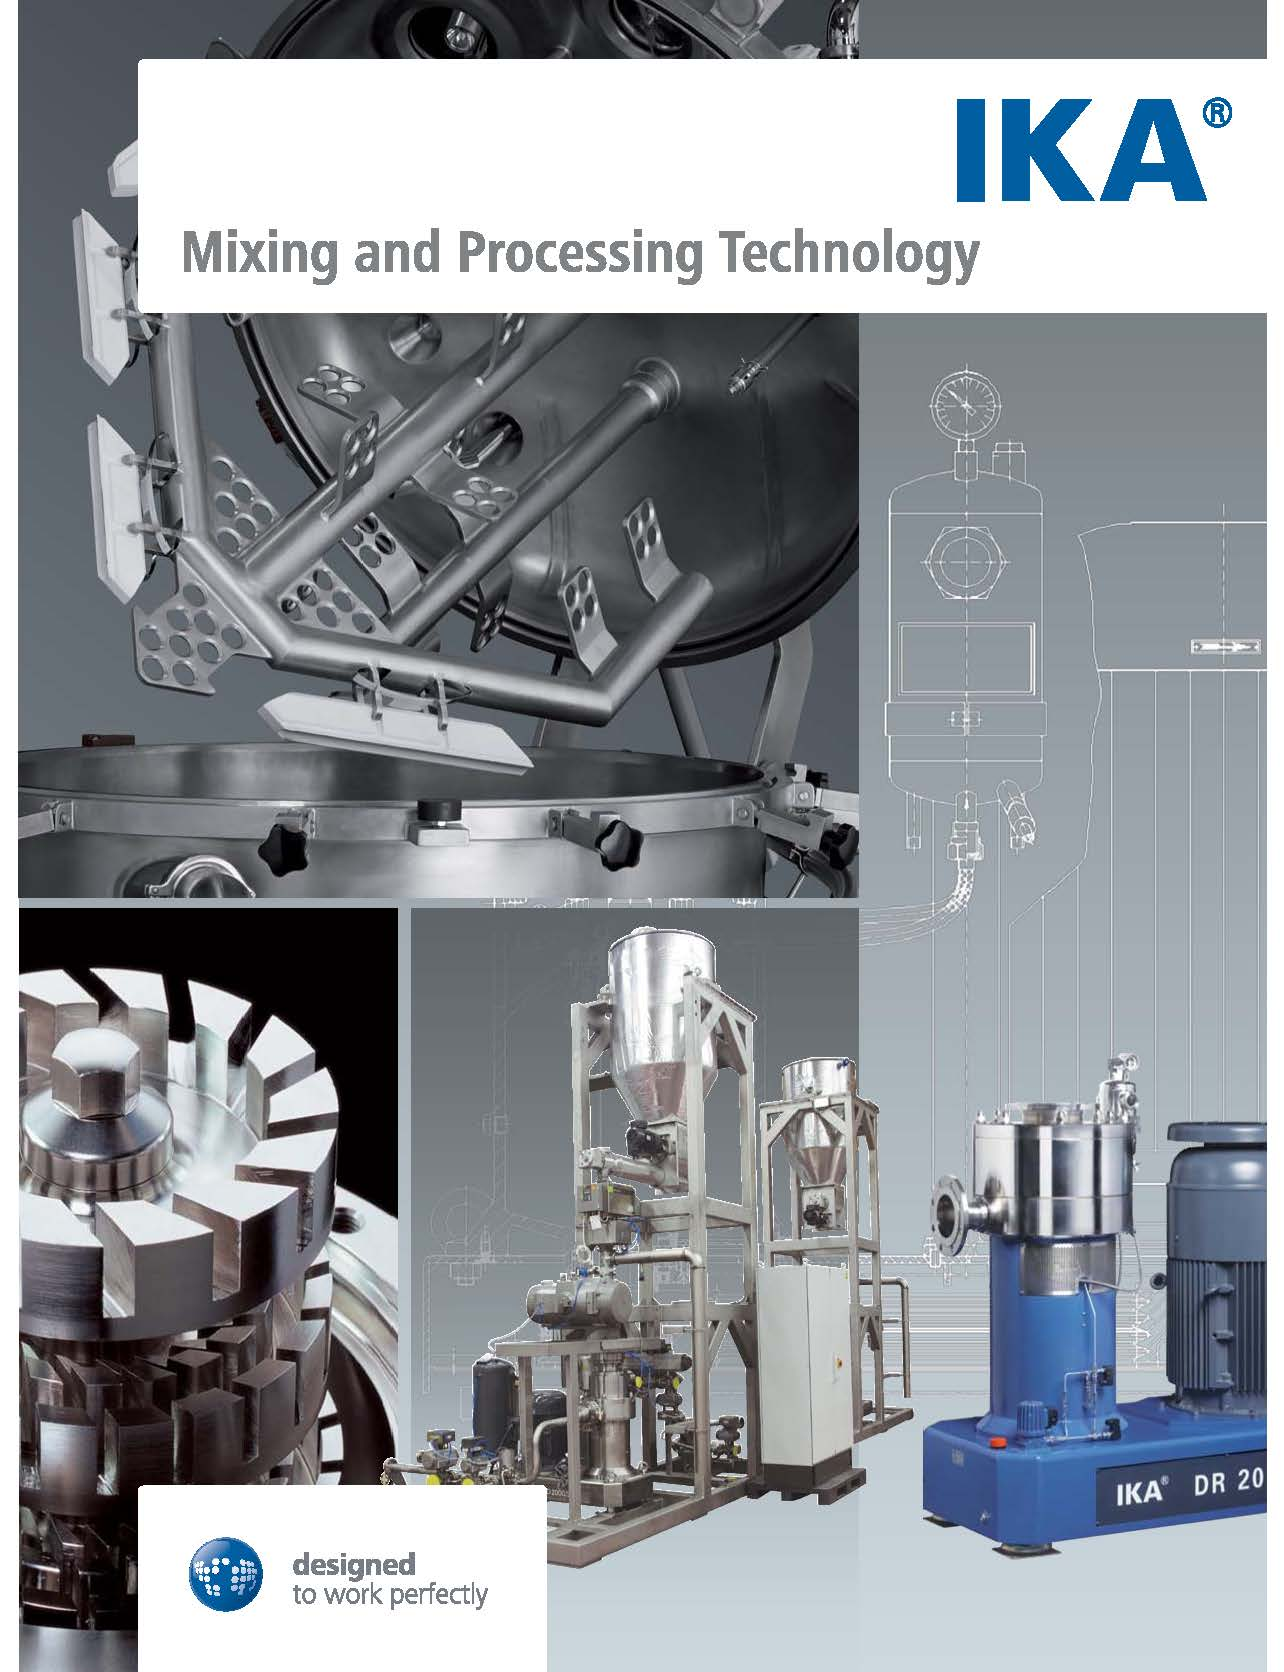 Mixing and Process Technology Image